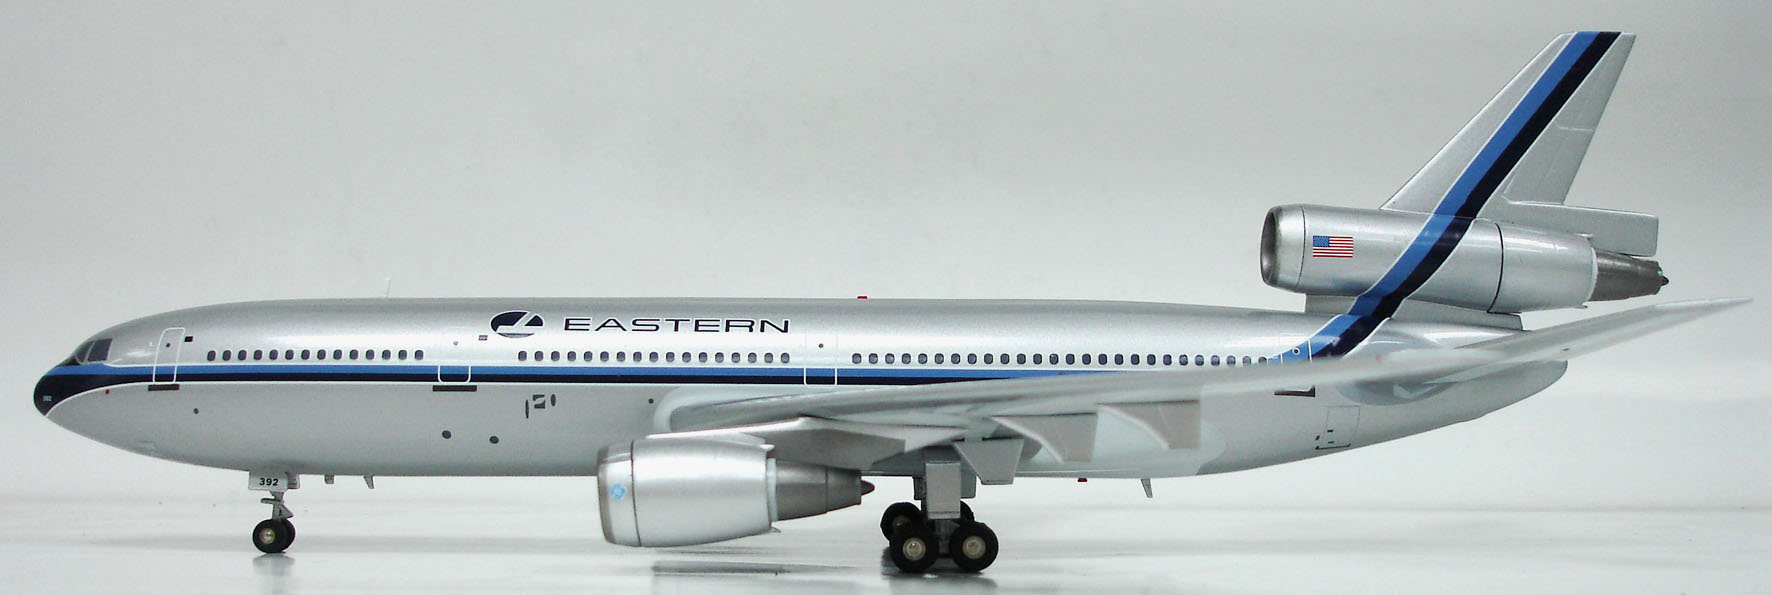 DC-10-30 Eastern Airlines